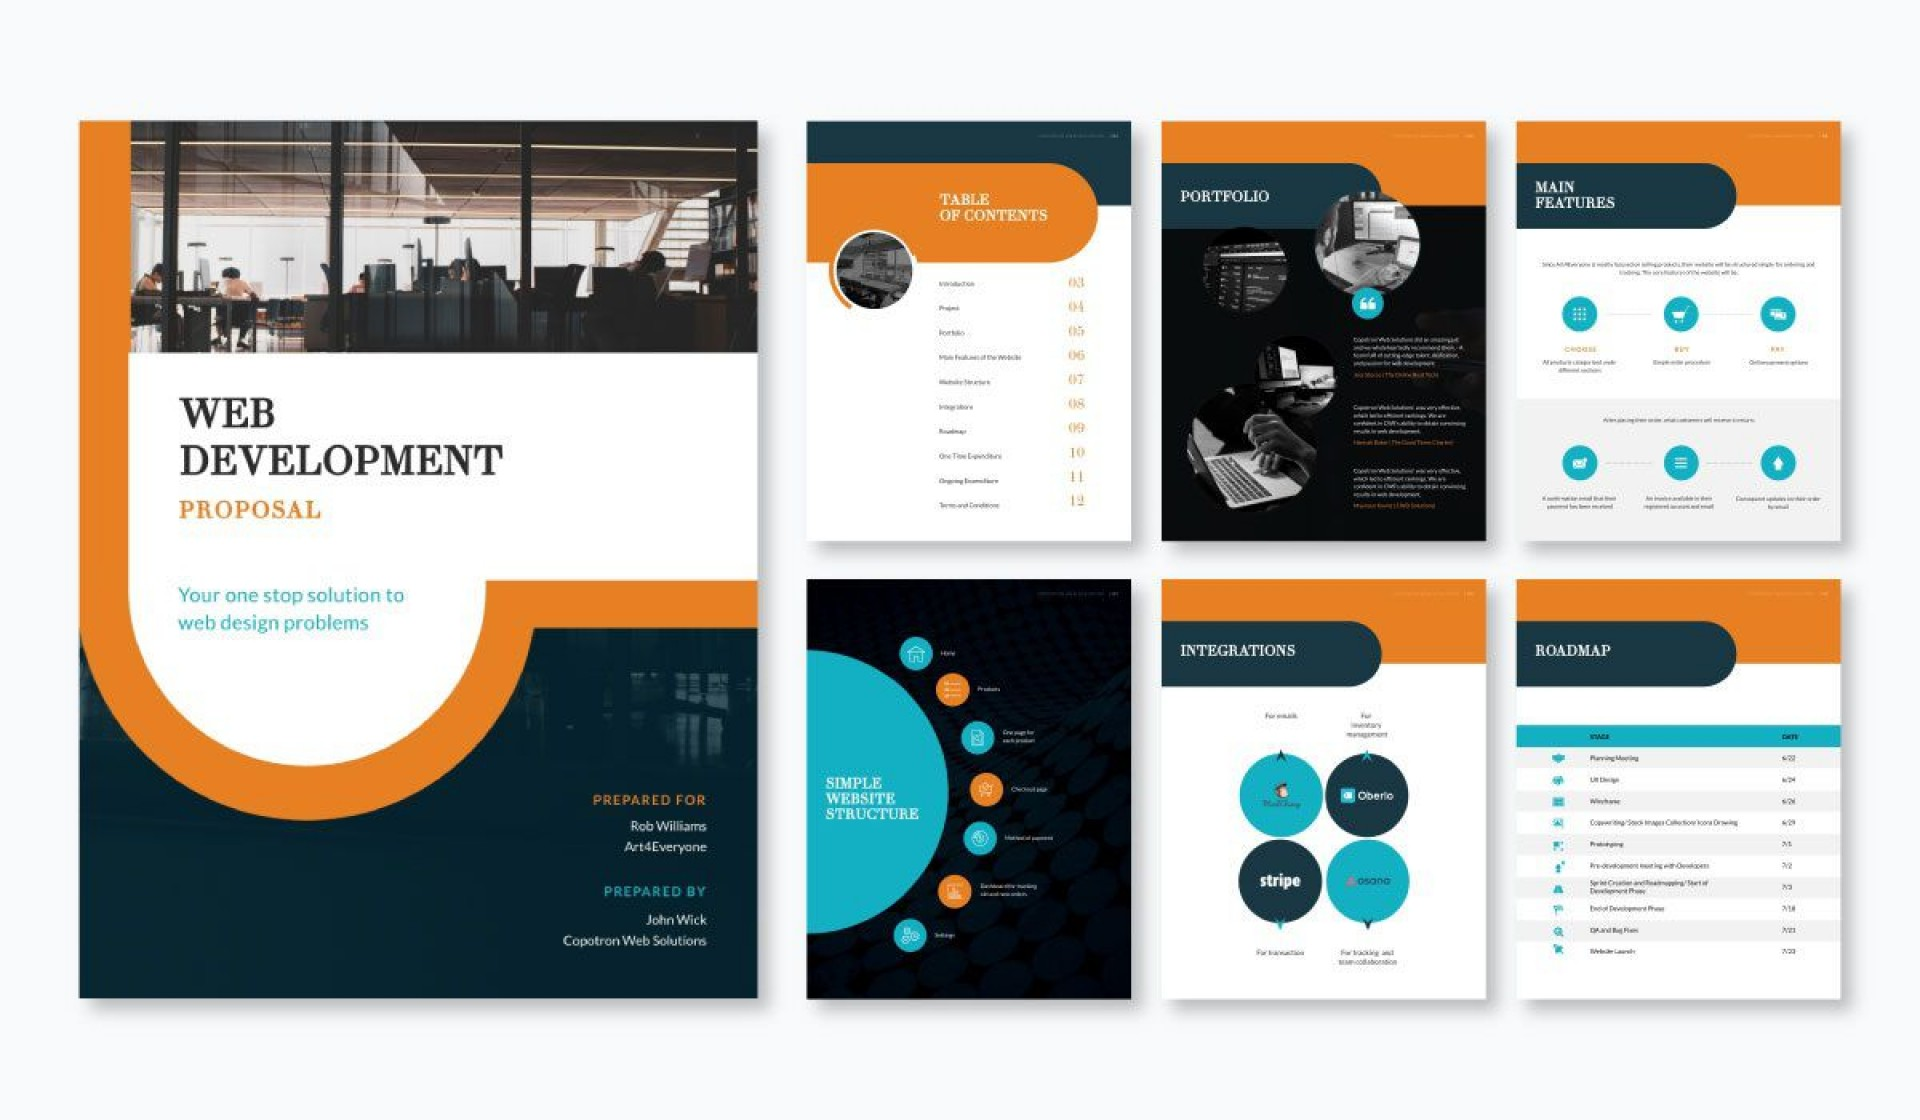 001 Awesome Web Design Proposal Template Free Picture  Freelance Download1920